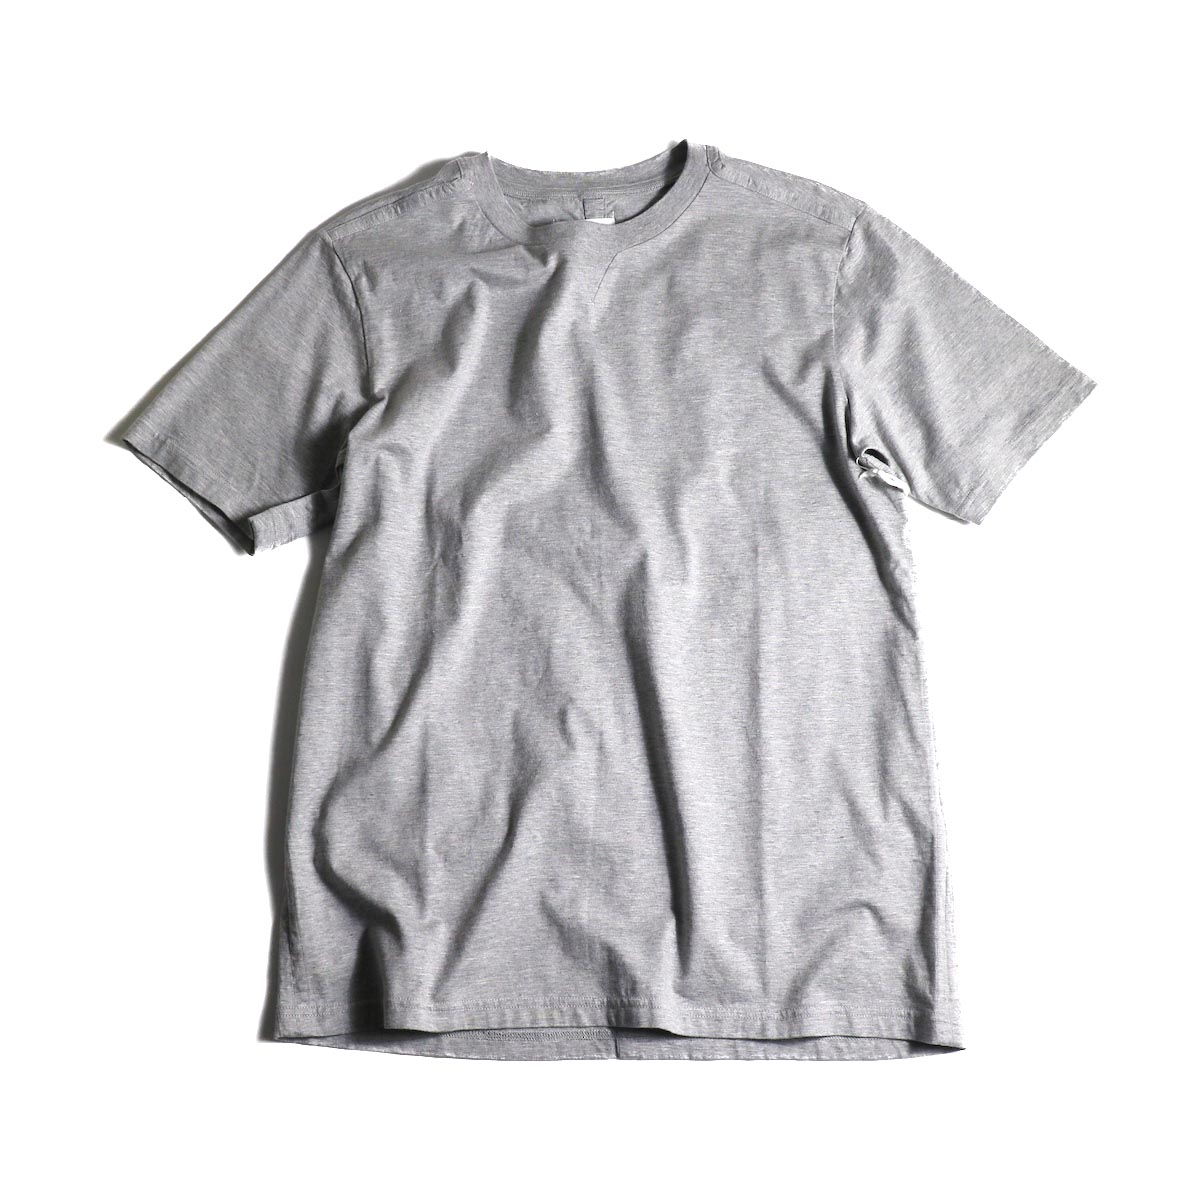 The Soloist / swc.0007a crew neck s/s tee (Gray)正面